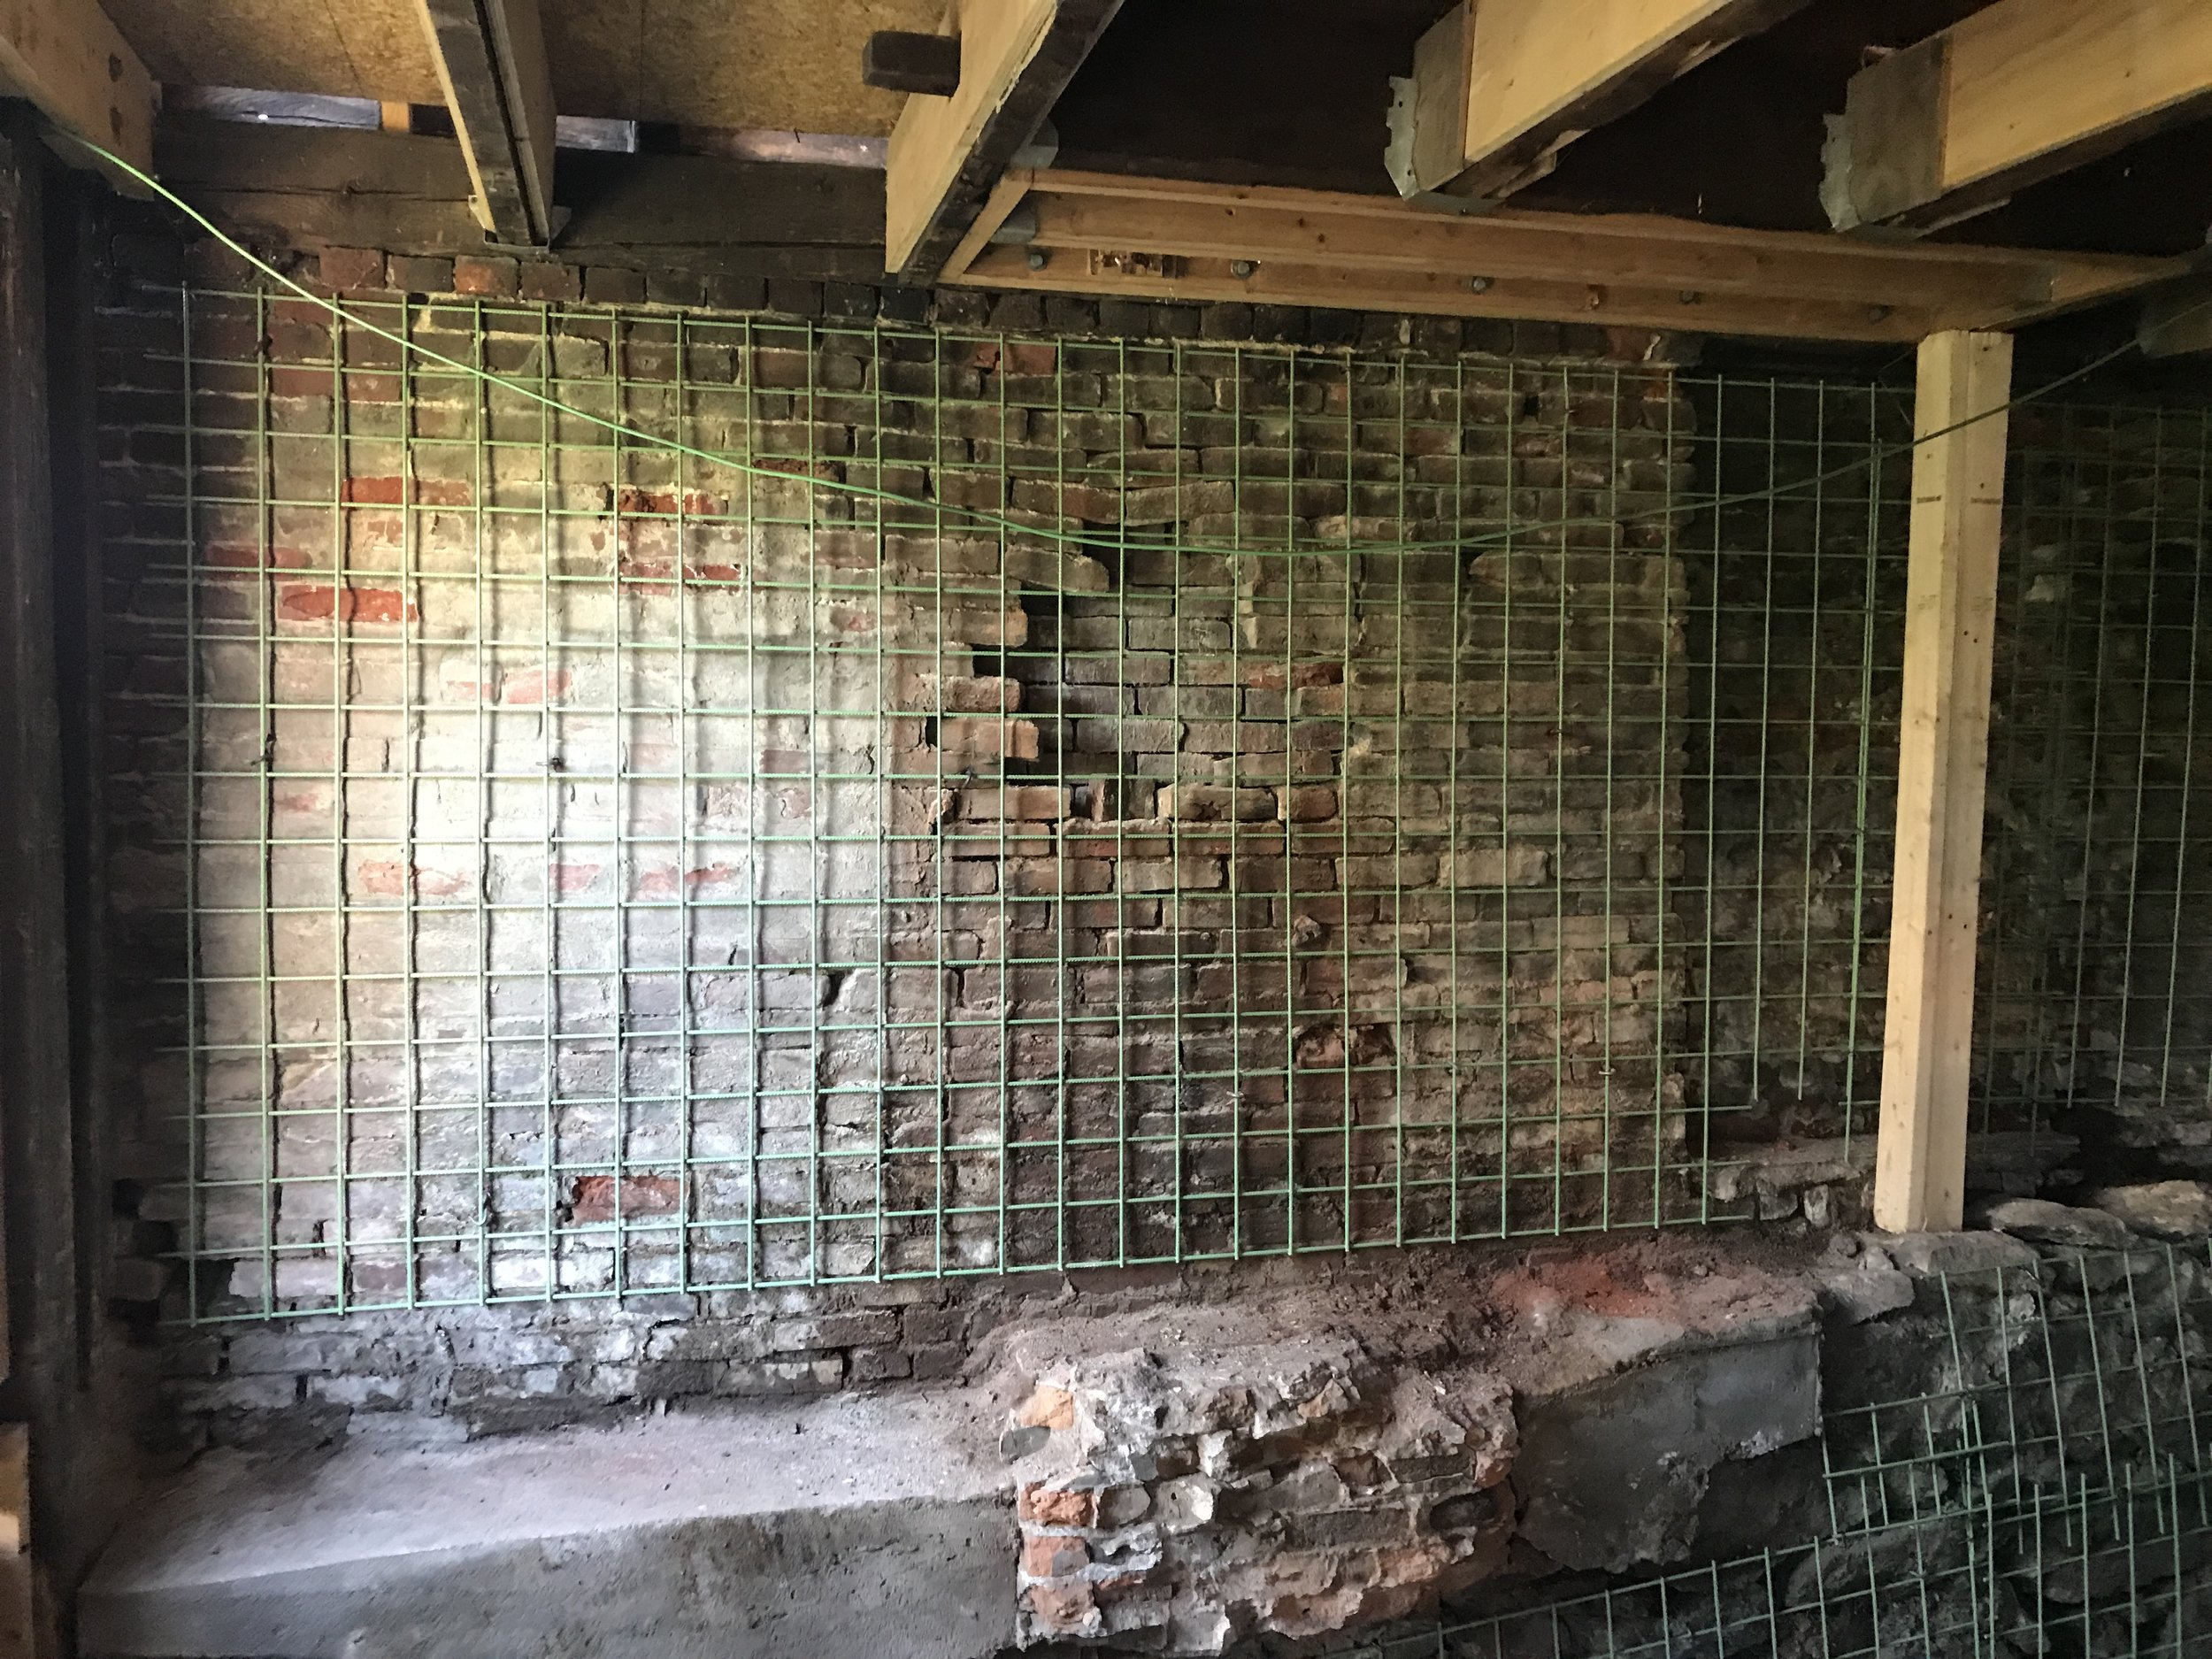 We decided to use reinforced rebar sheet and 3-4 inches of 7500 PSI shotcrete in order to rebuild and stabilize the foundation.